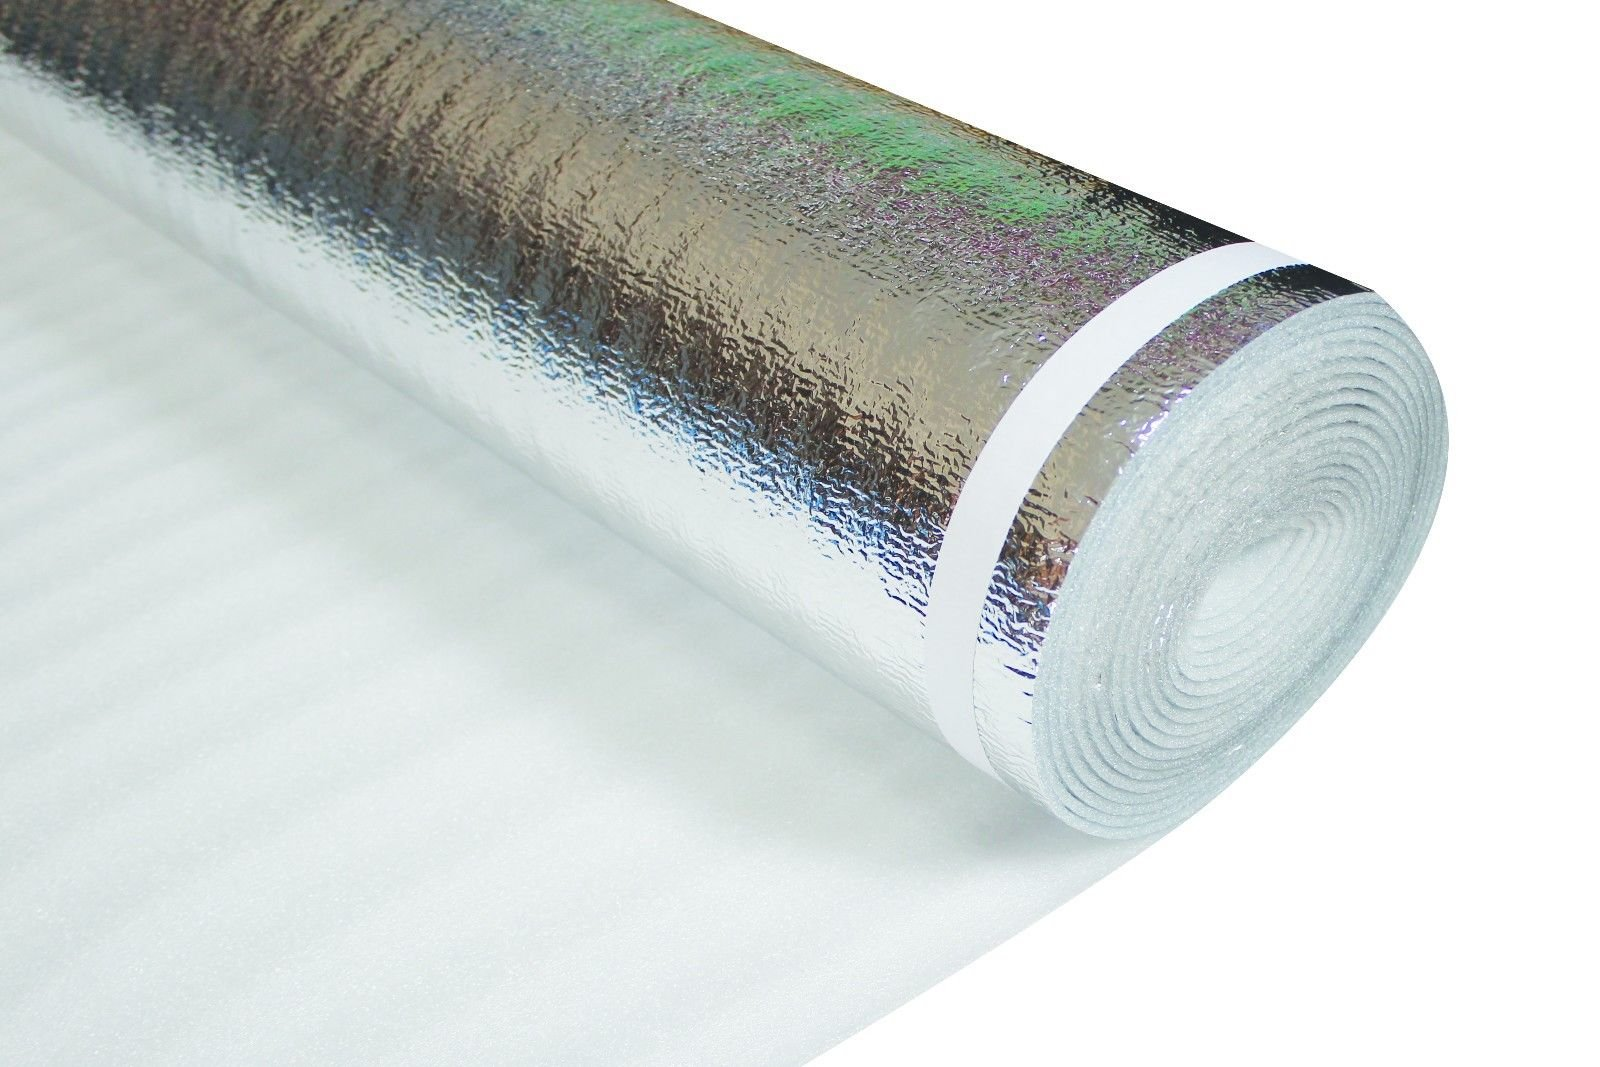 3in1-3mm Thick - 400sqft - Underlayment Foam with self-Sealing Lip and Tape - Laminate,Vinyl,WPC,Bamboo,Engineered Floor